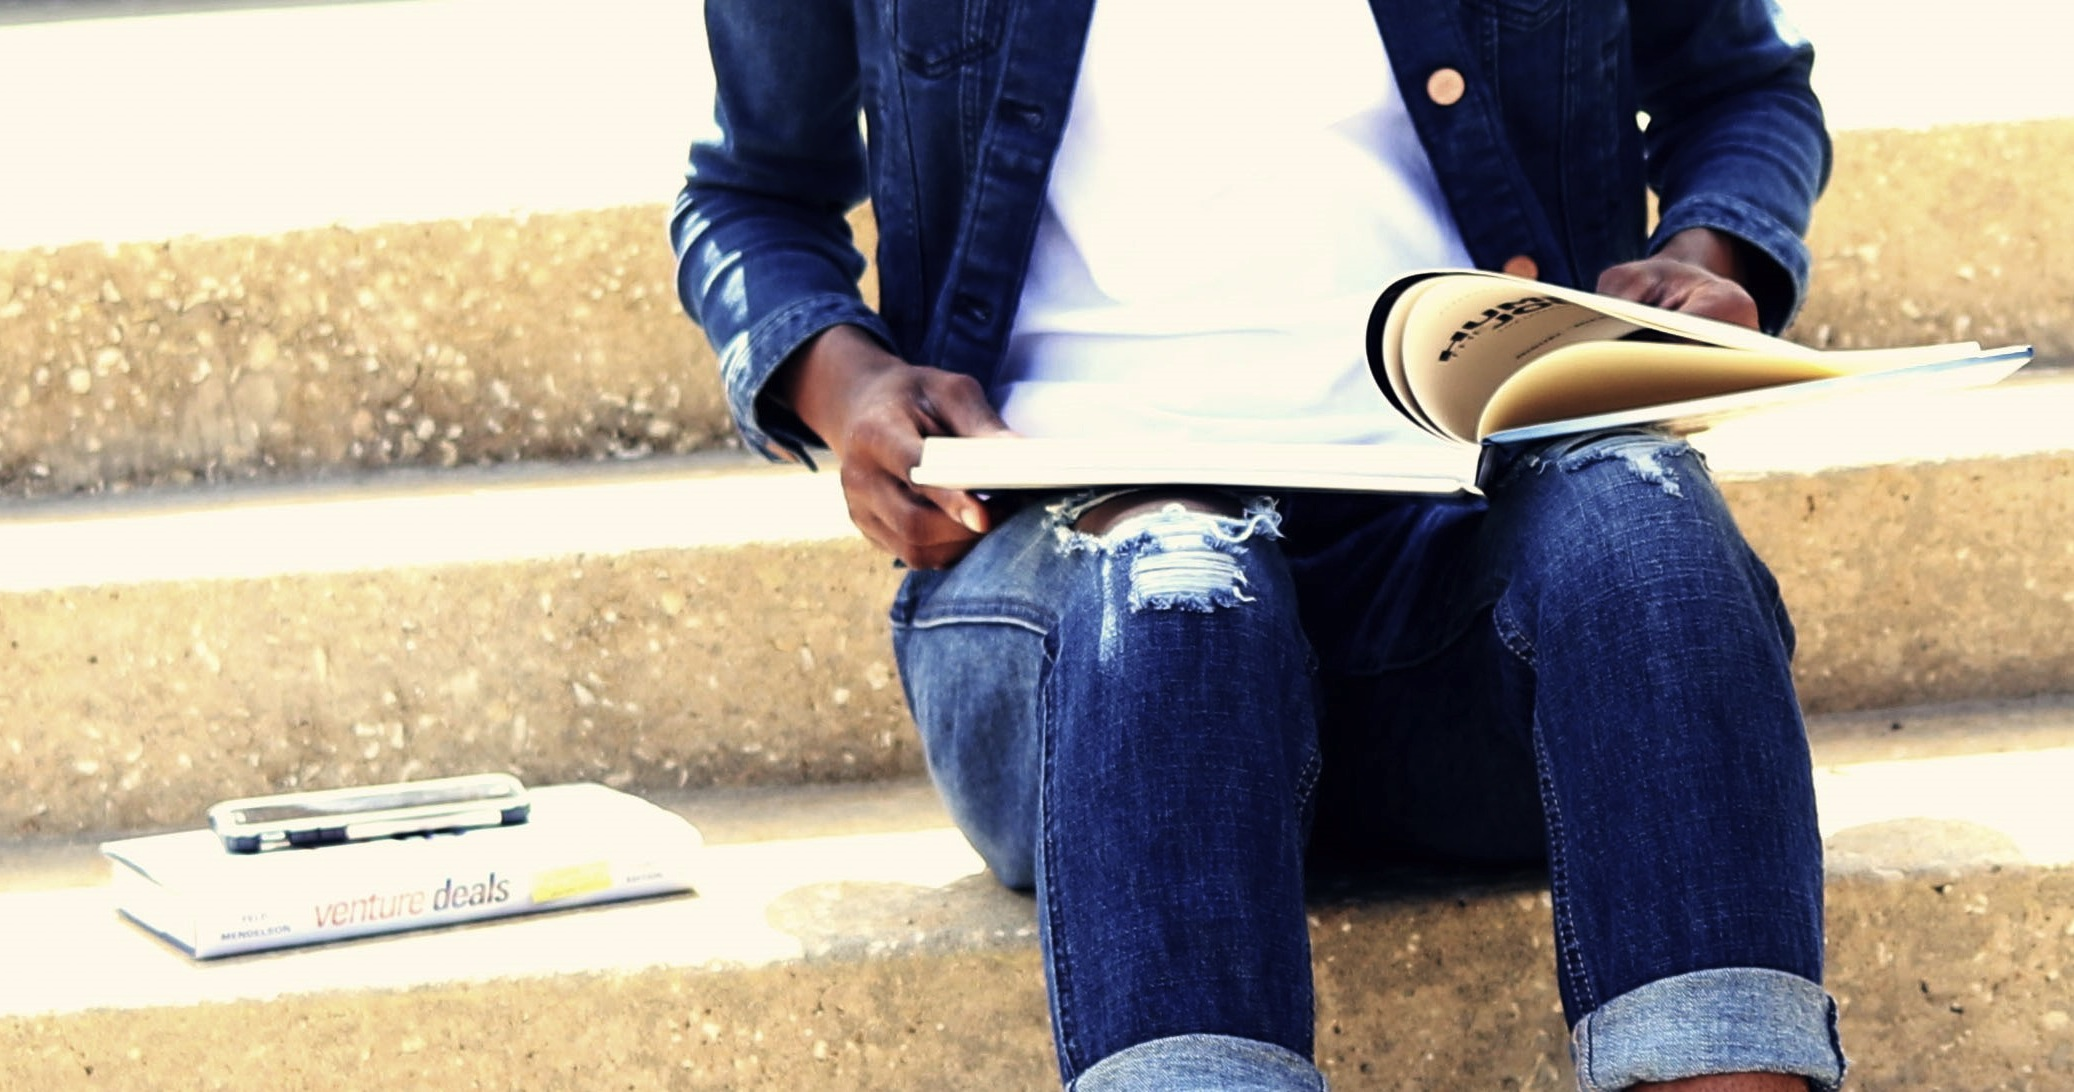 Person sitting on steps, holding an open book, photographed from chest down, wearing denim jeans and jacket.